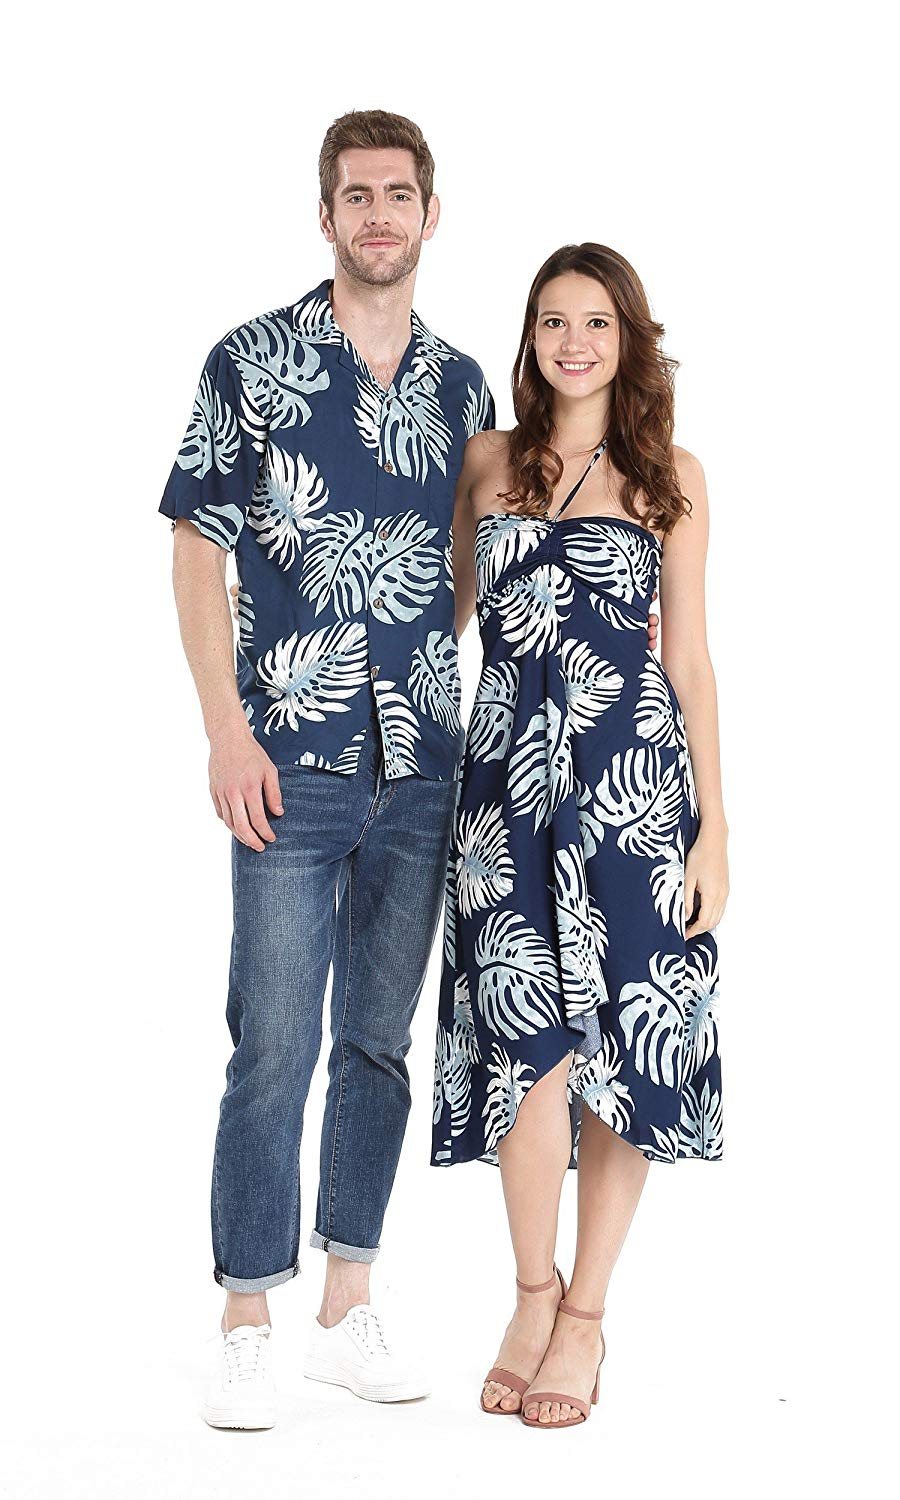 083f76c98ed2 Get Quotations · Hawaii Hangover Couple Matching Hawaiian Luau Party Outfit  Set Shirt Dress in Black Rafelsia